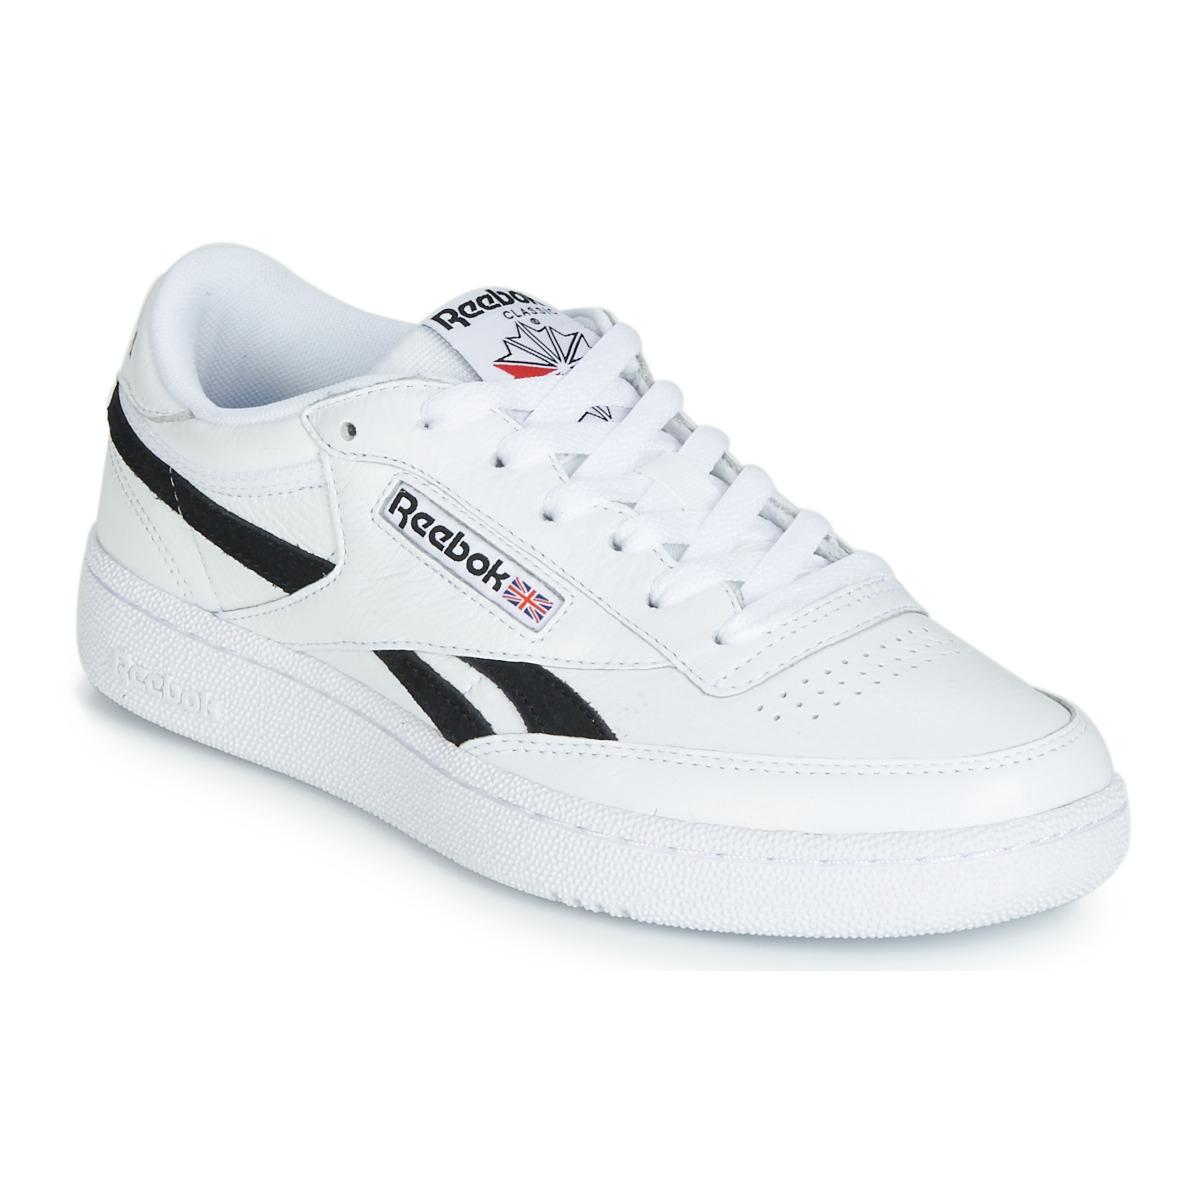 ba0536295c2c94 Reebok Revenge Plus Mu Women s Shoes (trainers) In White in White - Lyst